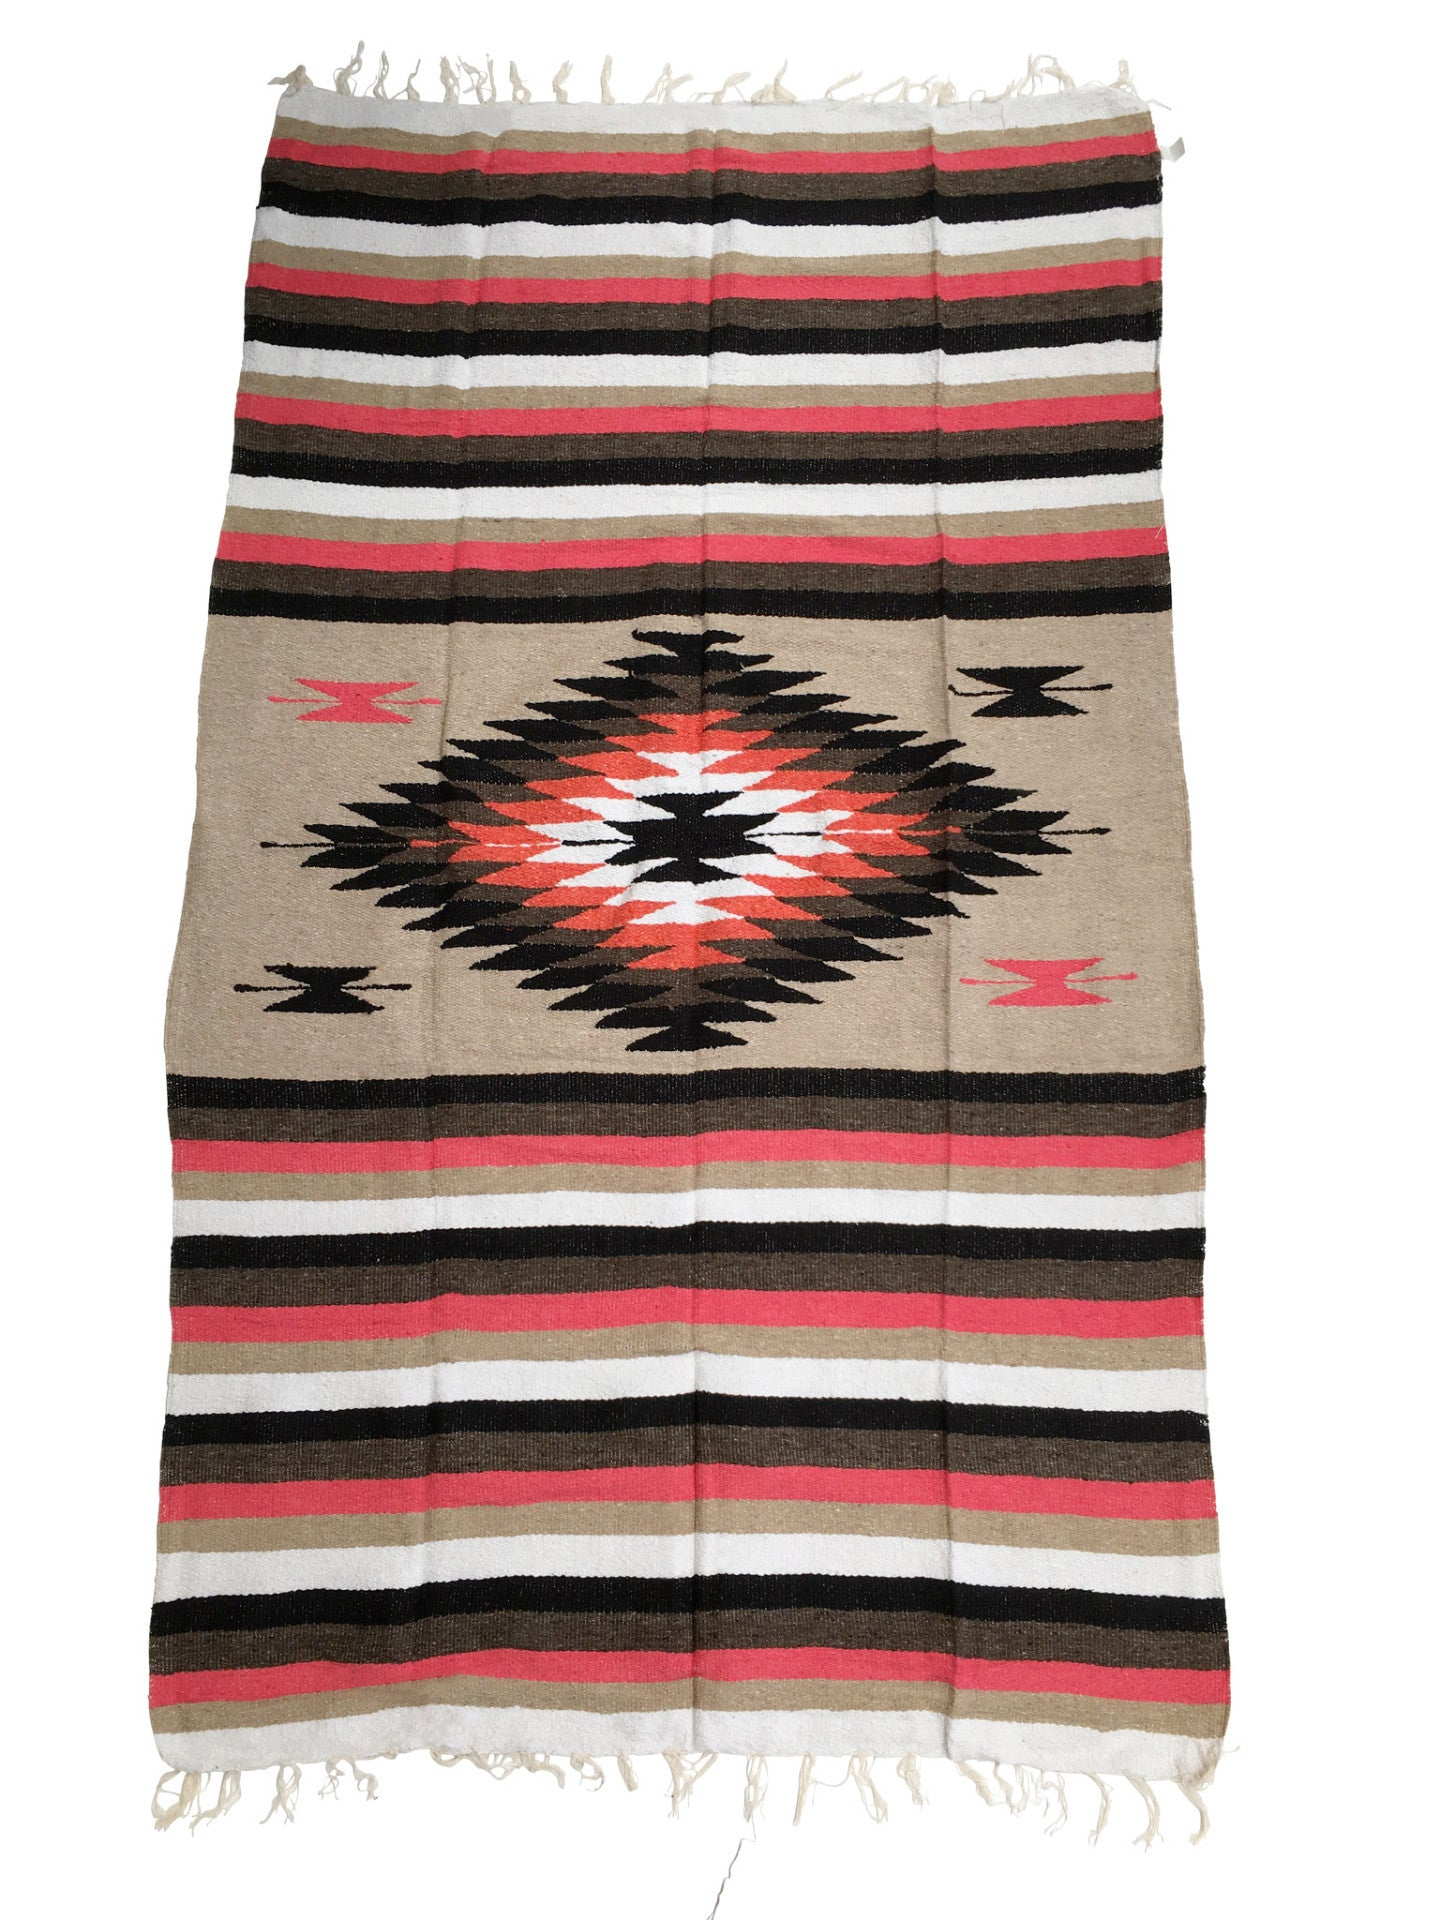 The Neon Prism Blanket: Neon + Earth Tone Heavy Weight Diamond Mexican Blanket